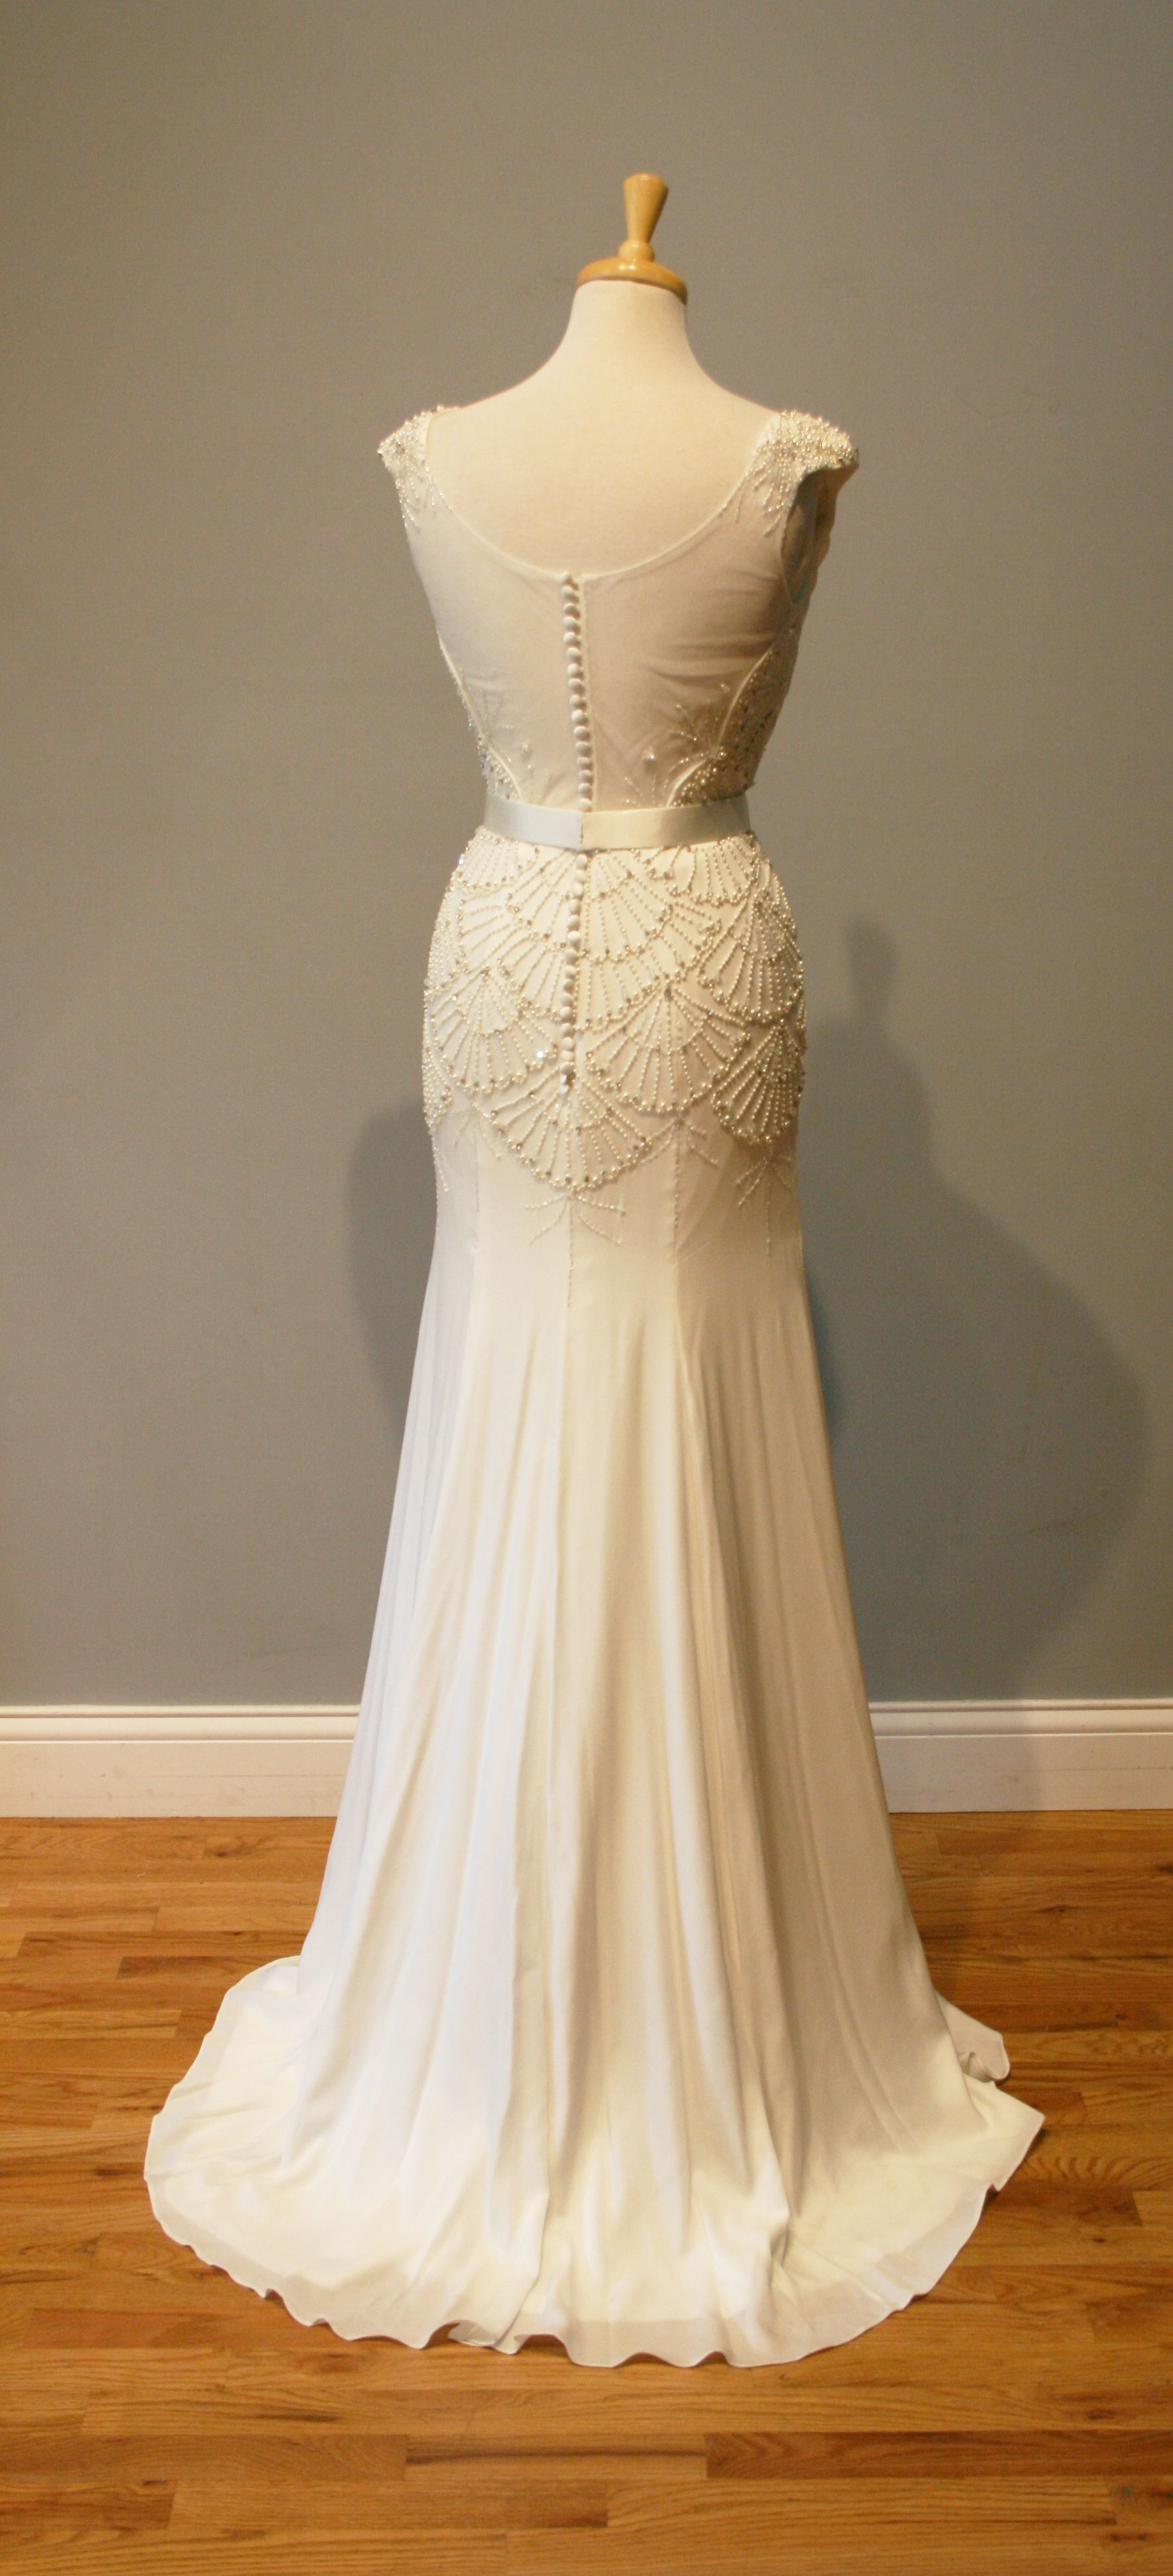 Brittany S Beautiful Scallop Beaded Vintage Style Wedding Dress Avail Company Llc Perfect For